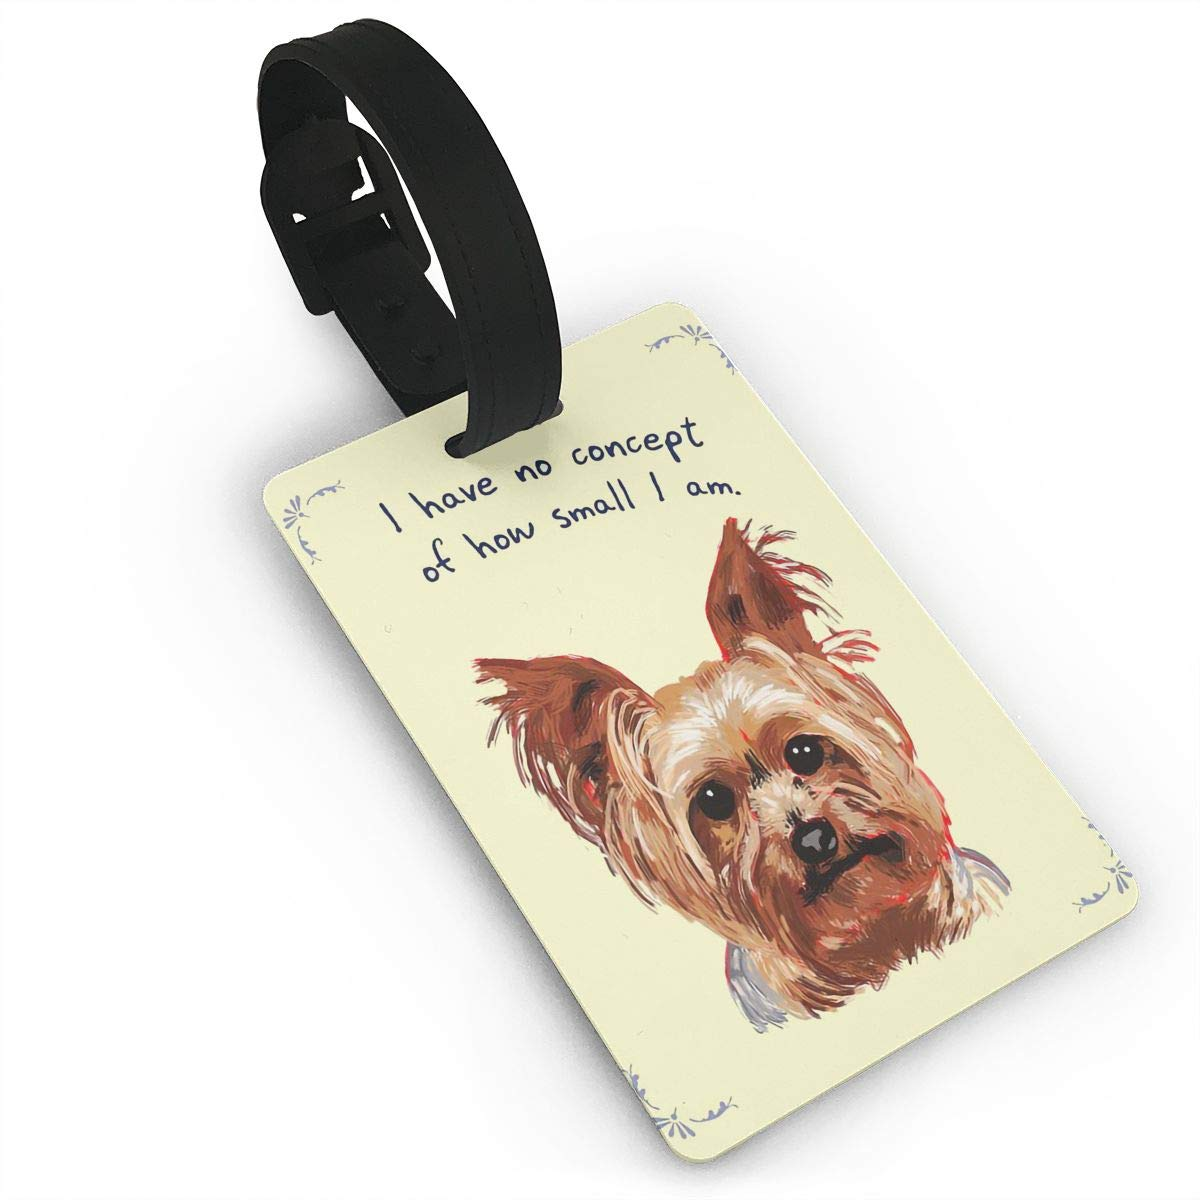 Bichon Frise Baggage Tag For Travel Tags Accessories 2 Pack Luggage Tags